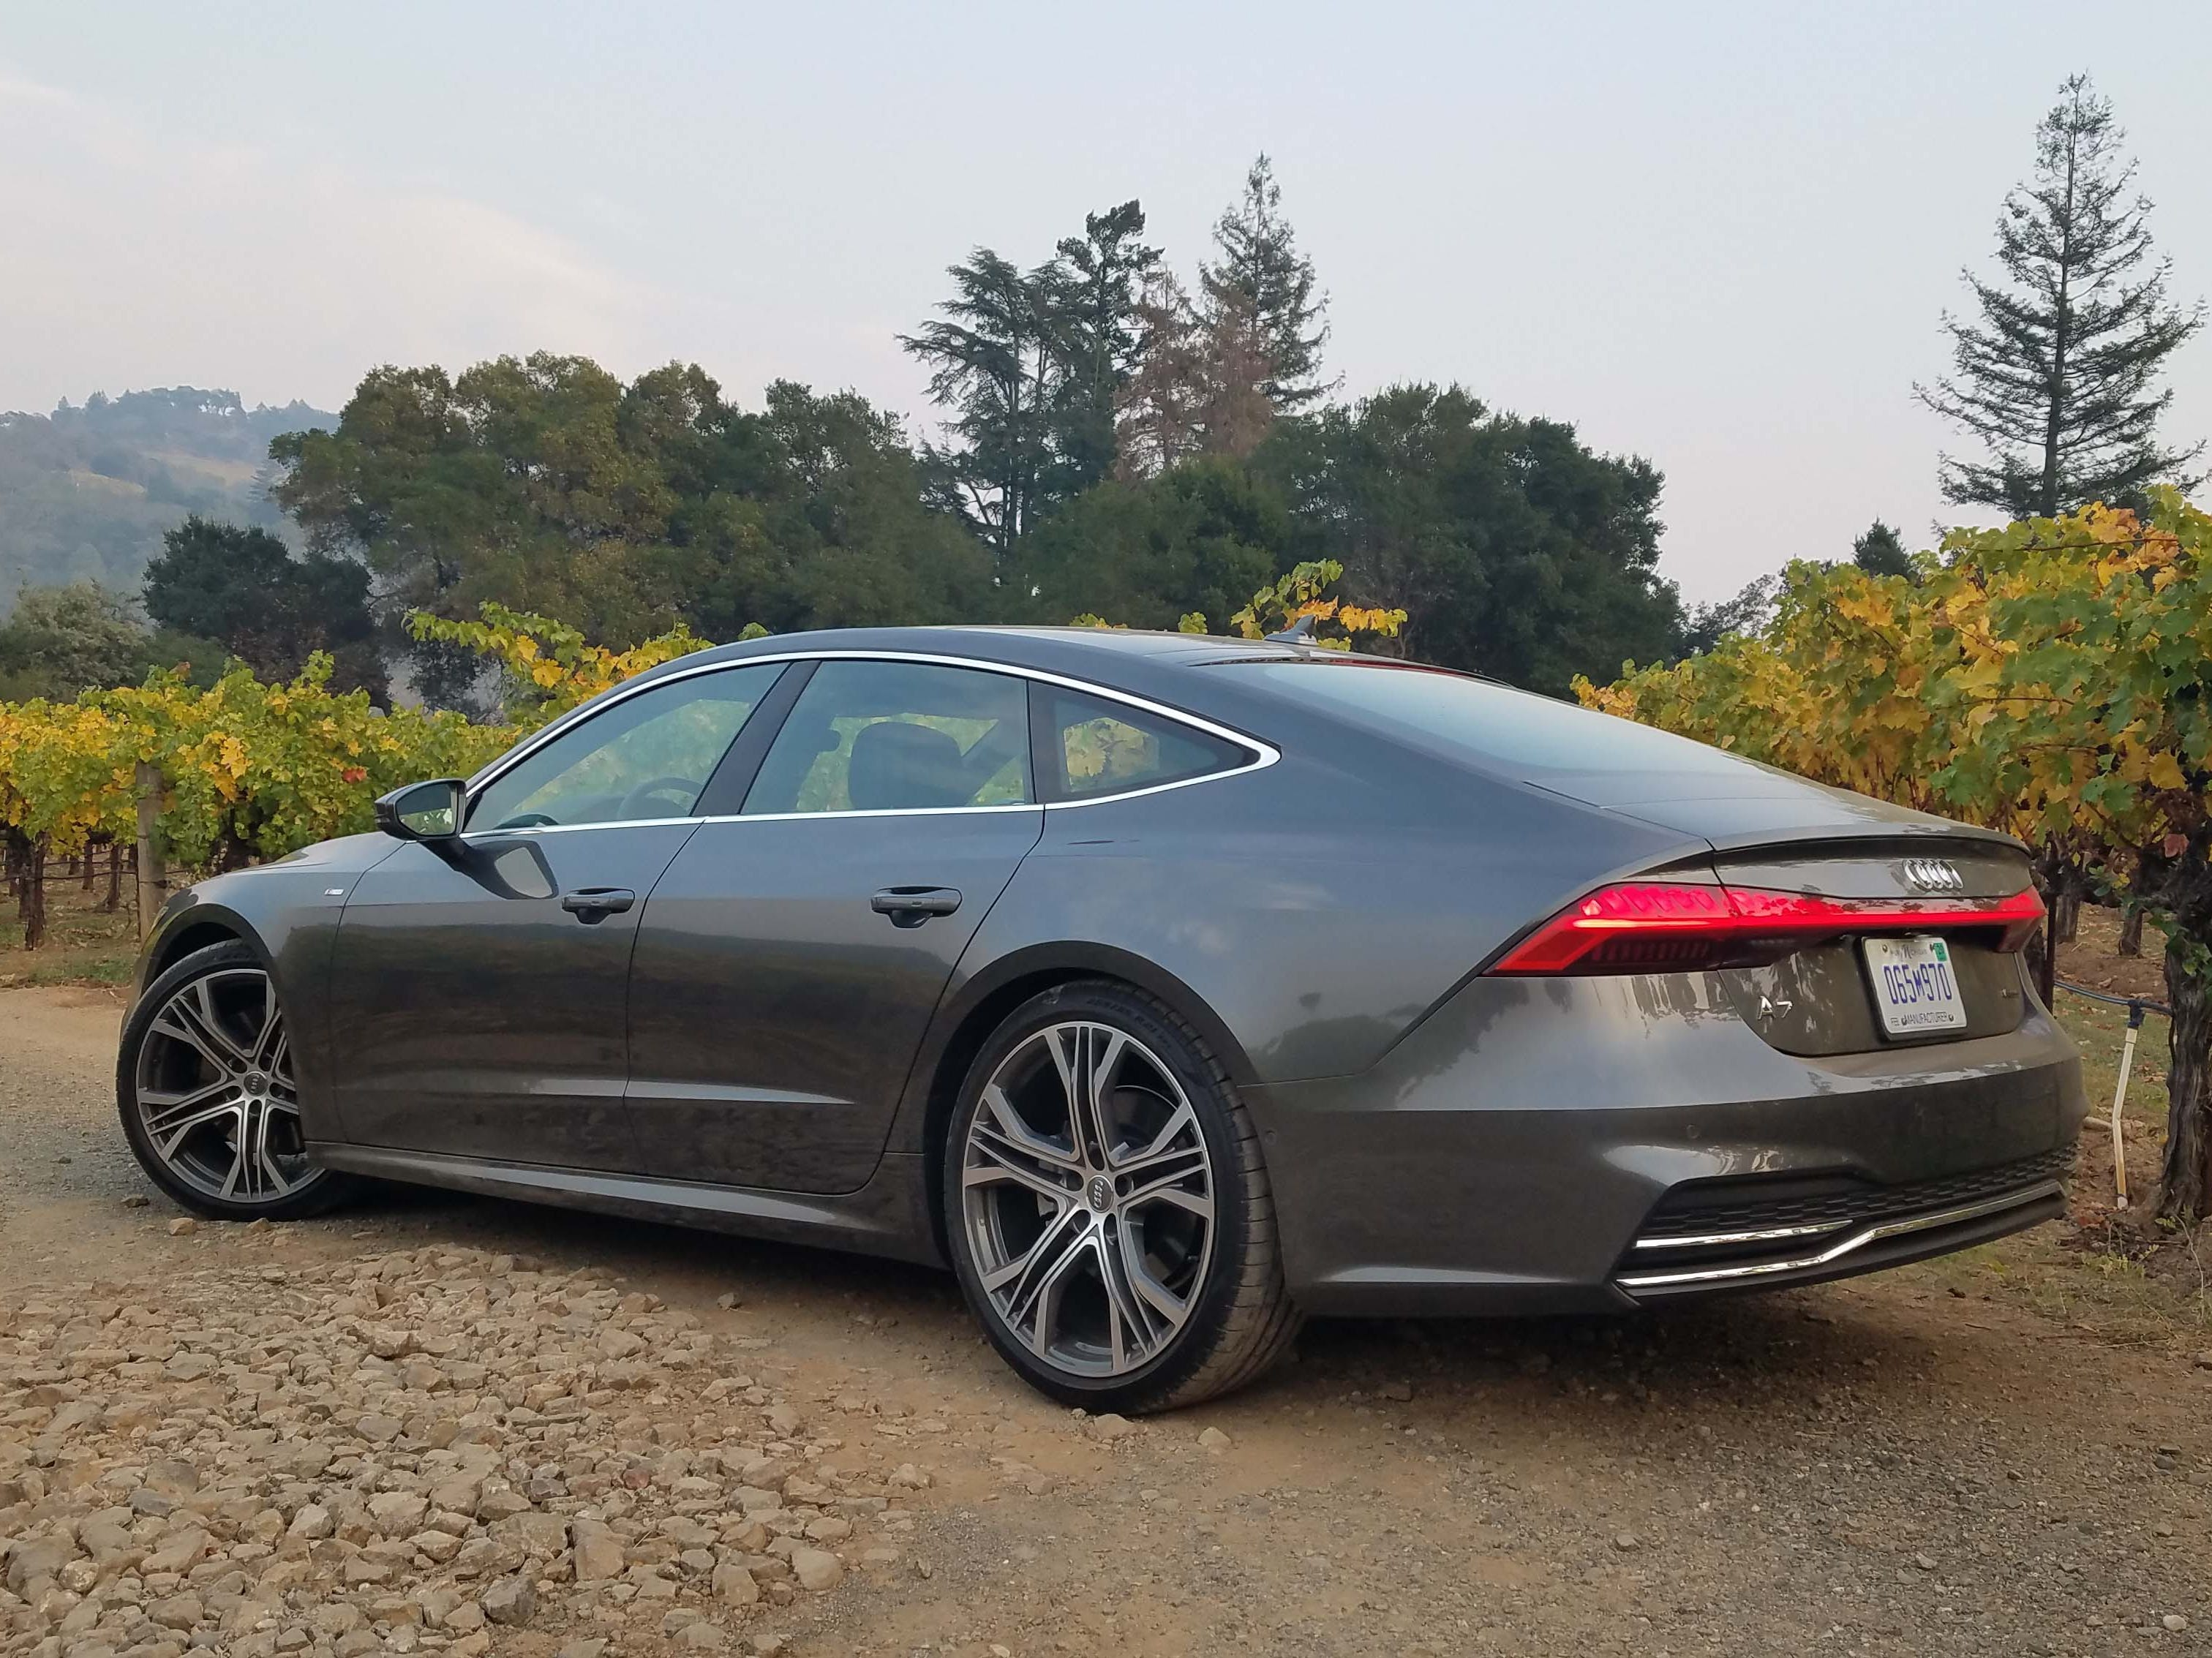 "The Audi A7's sportback is the envy of autodom. For 2019, designers raised the trunk lid — it was too low ""like a German shepherd,"" chief designer Russo like to say — and added more dramatic lighting. The fastback pinches headroom a bit in the back seat, but a 6'5"" body can sit up straight."